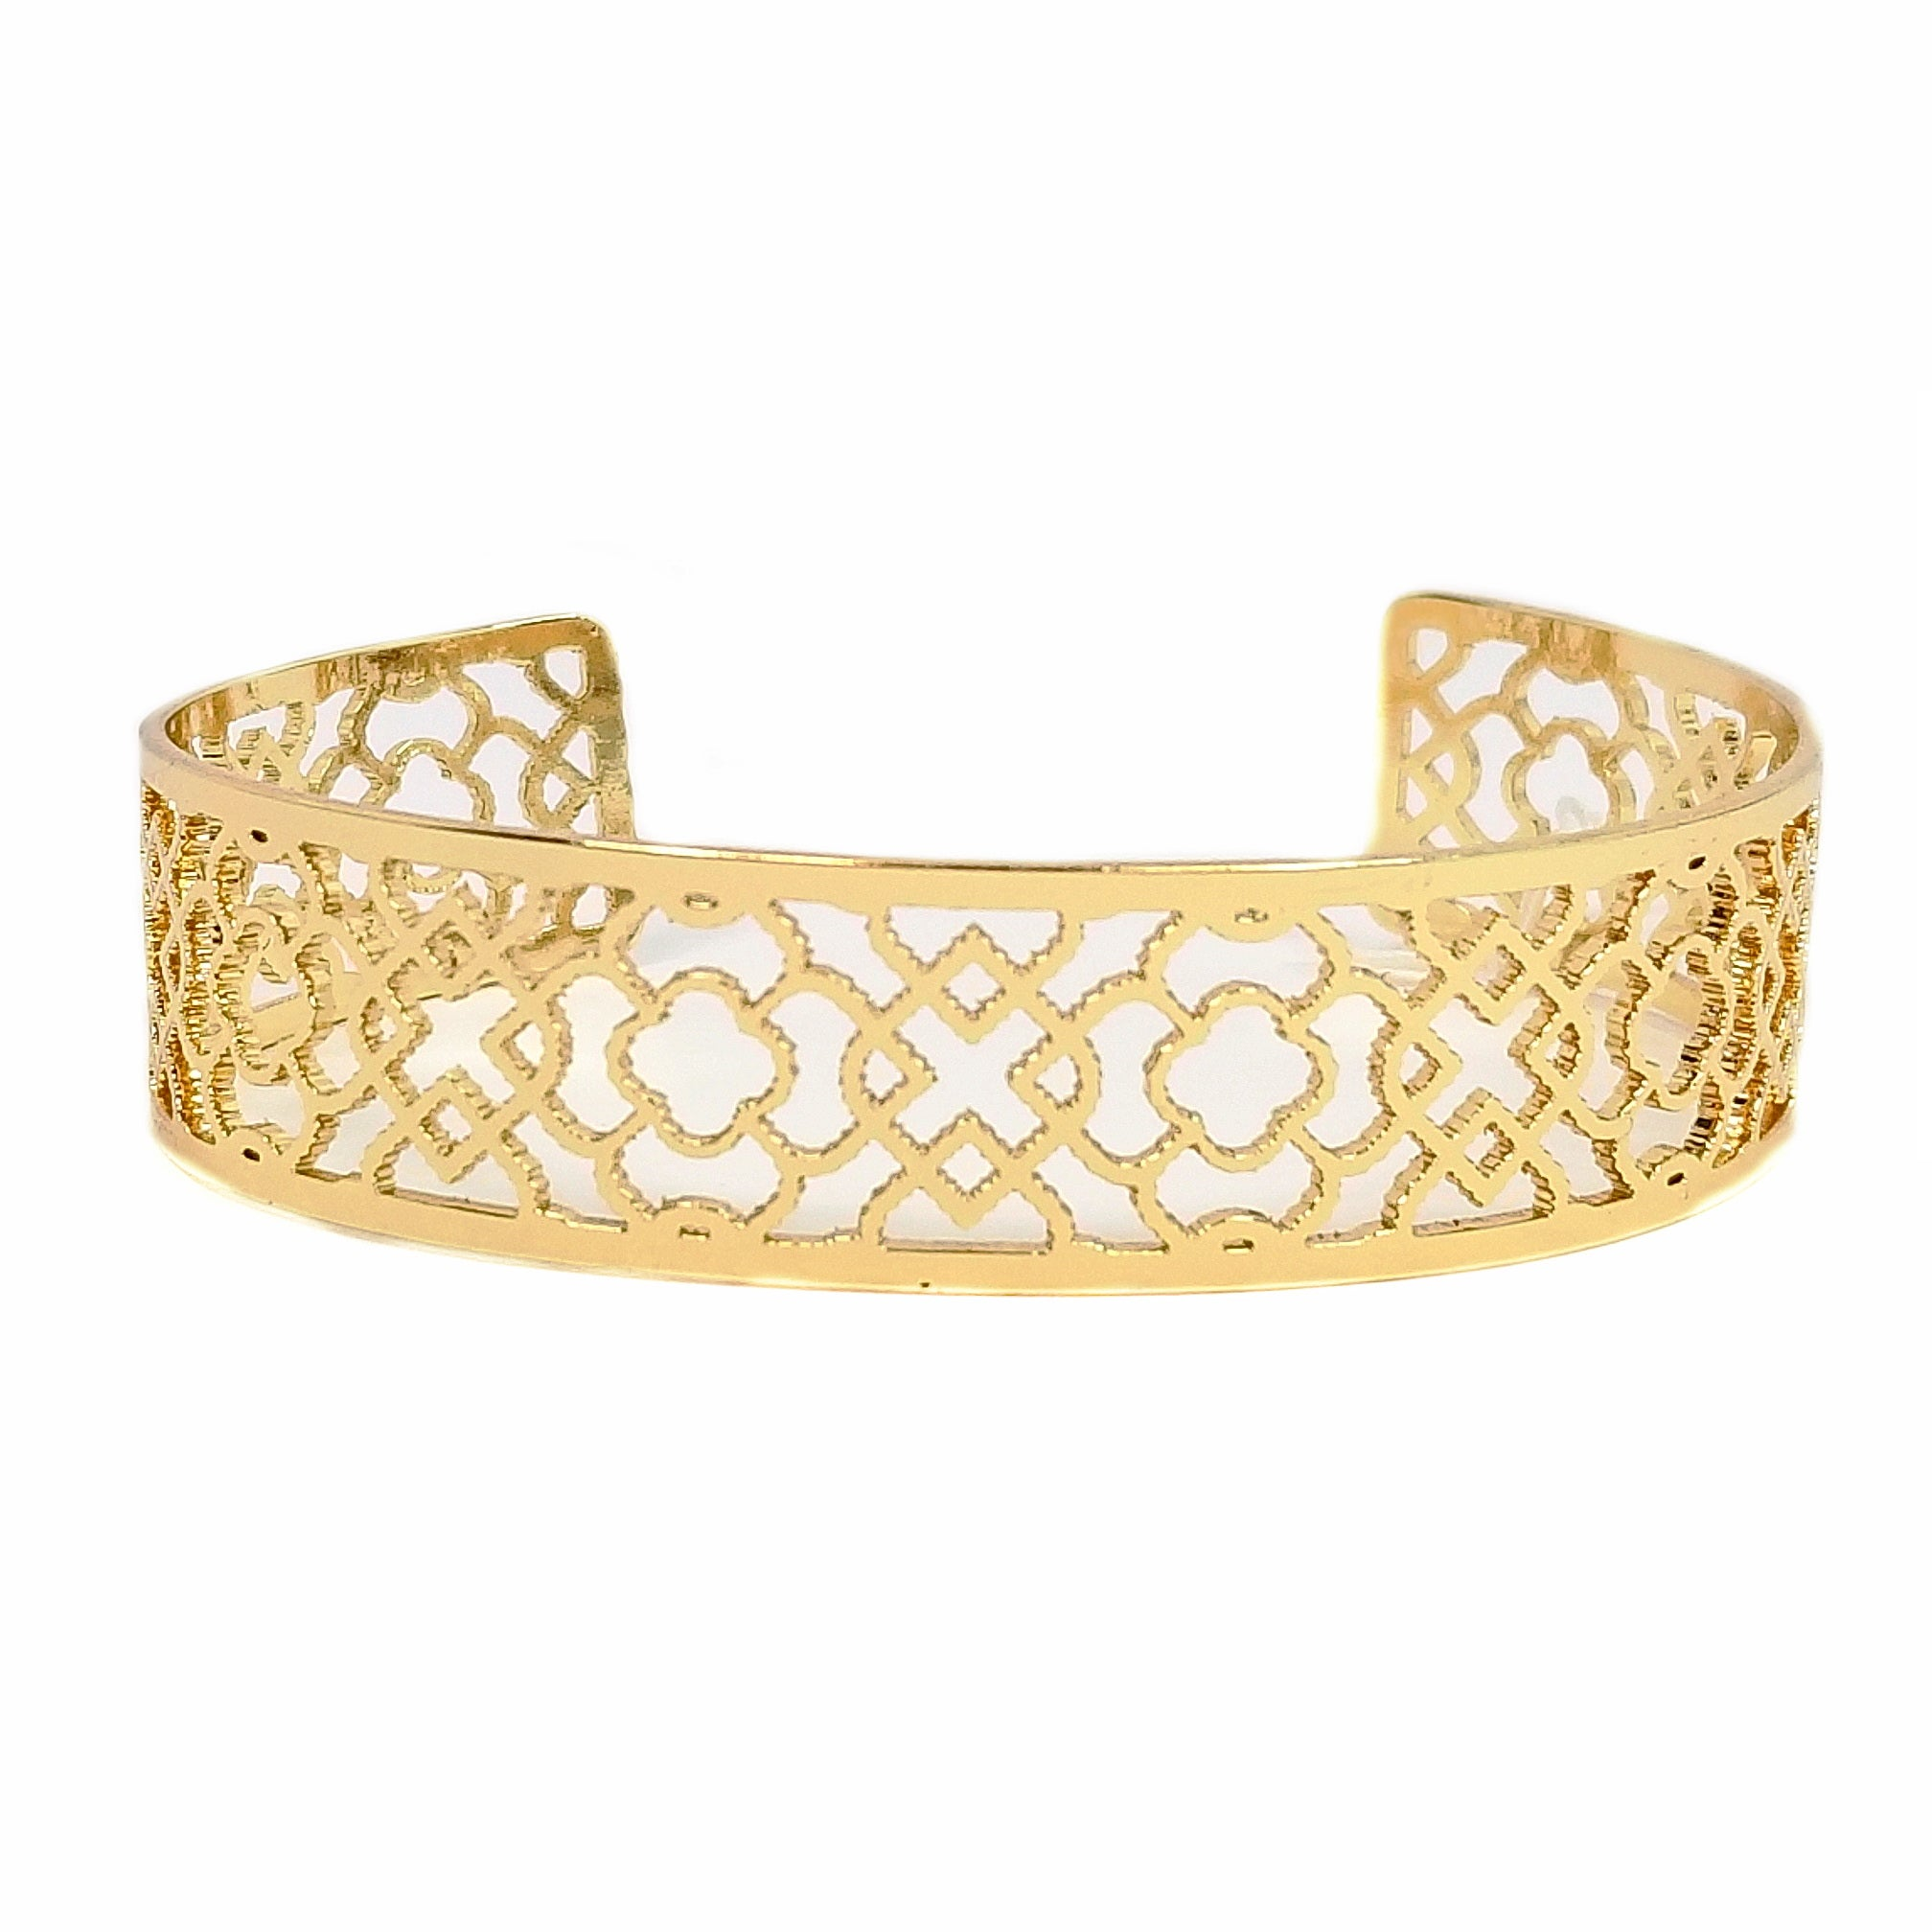 Flower Cut Filigree Cuff Bracelet